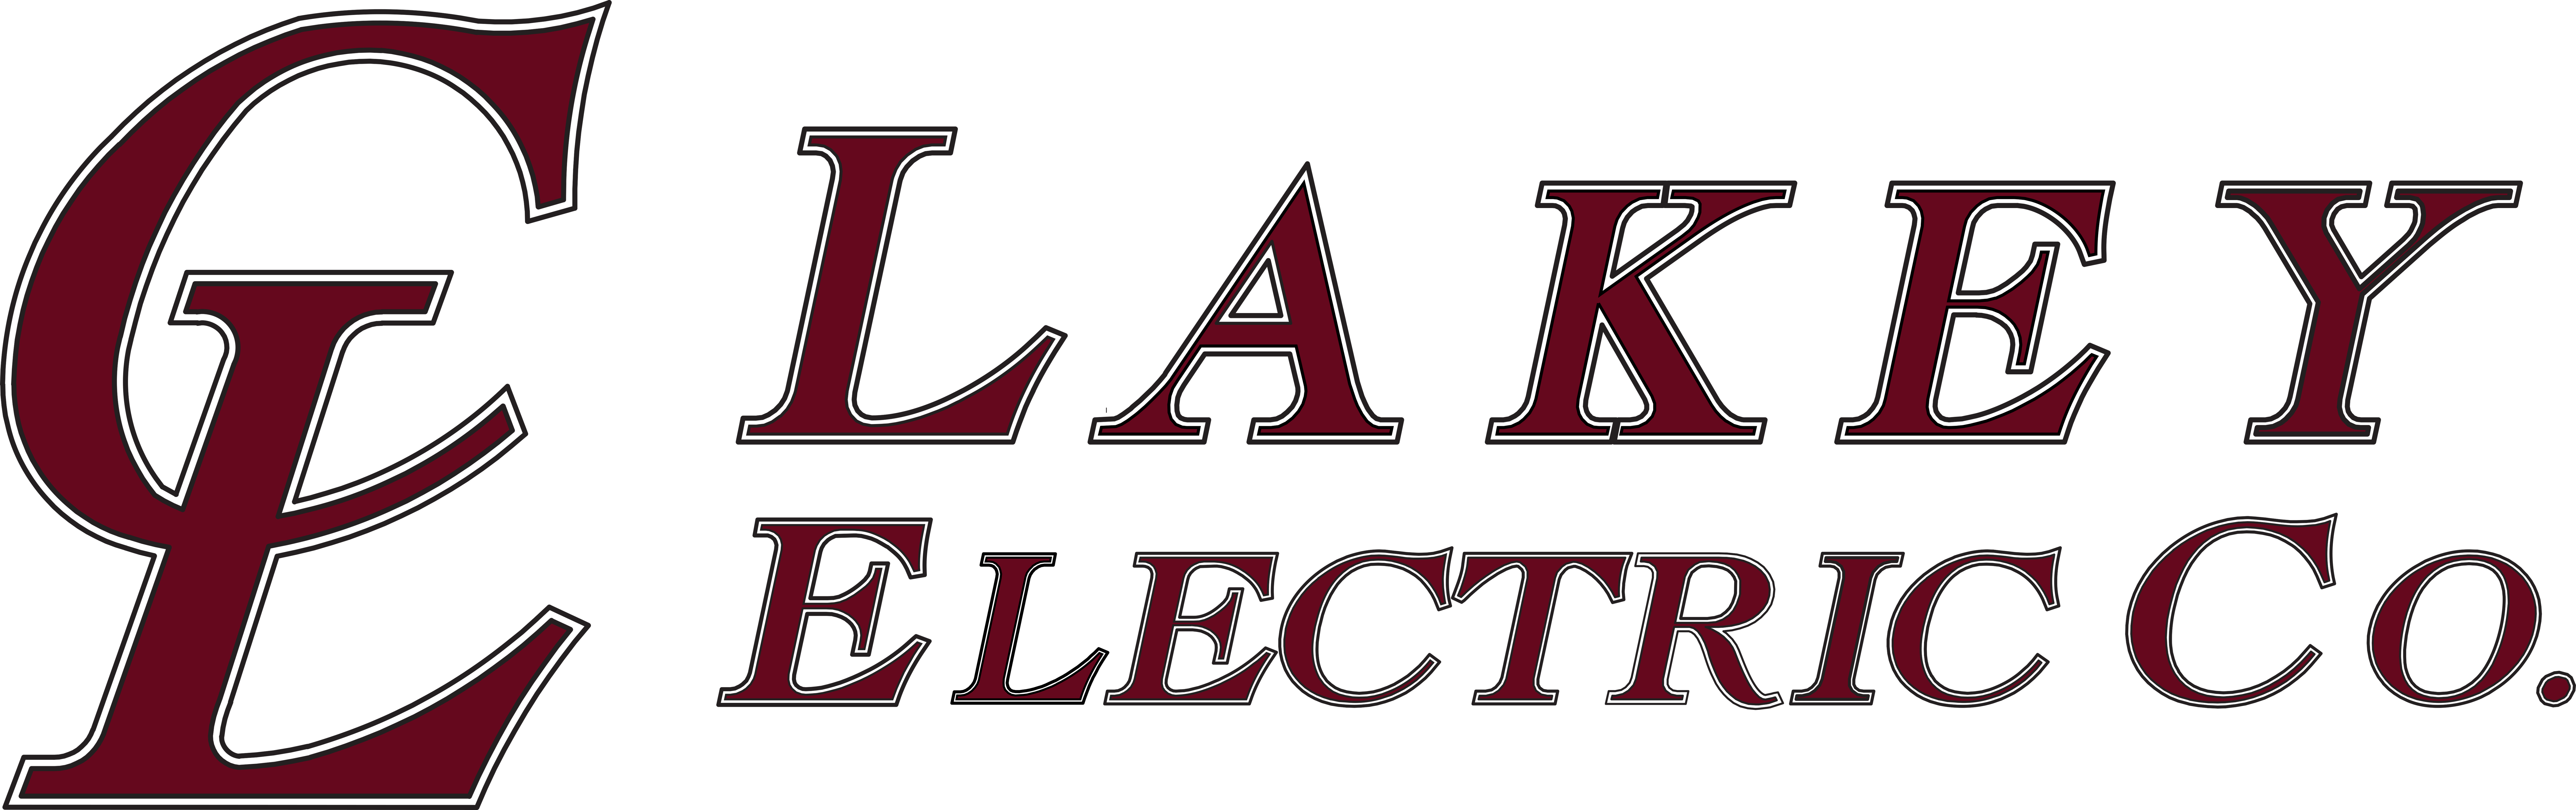 Lakely Electric is sponsoring Run To Attack Poverty's 5K